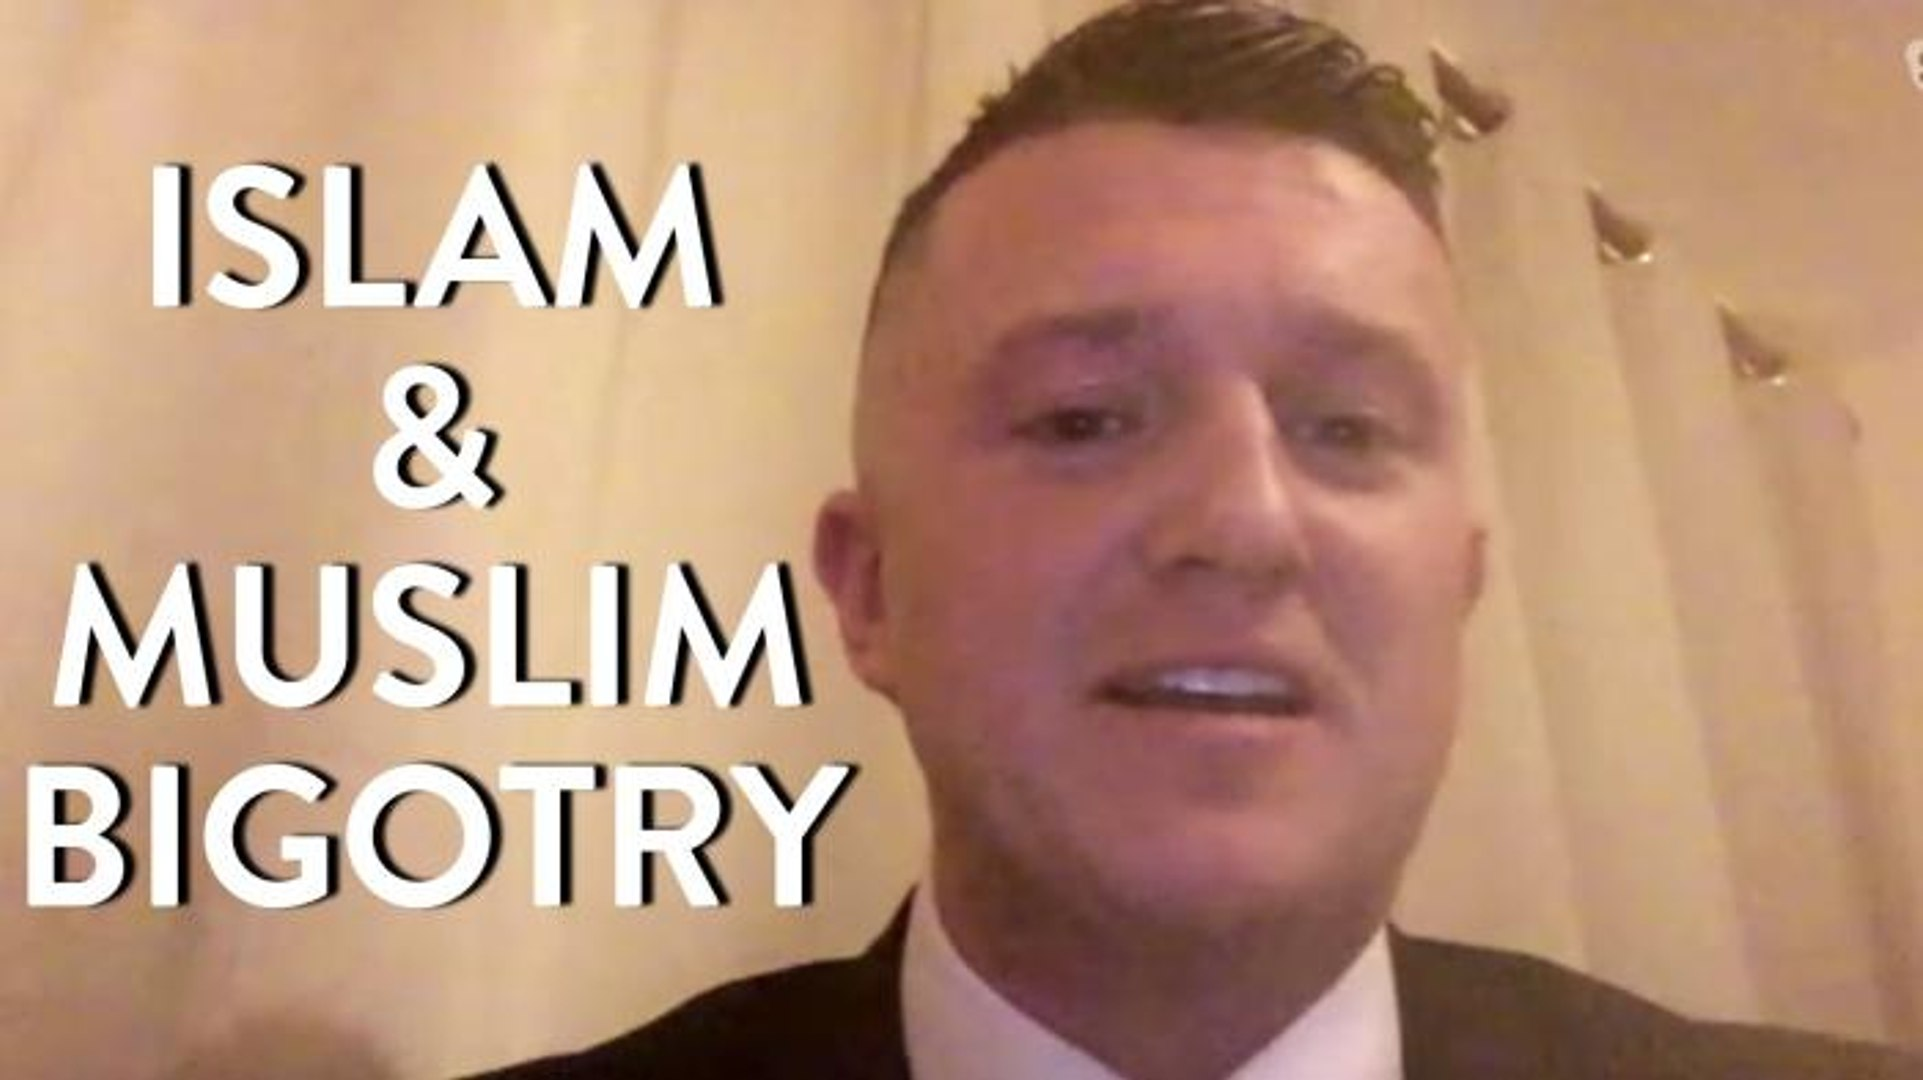 Tommy Robinson on Islam, Muslim Bigotry, and UK Immigration (Interview Part 1)